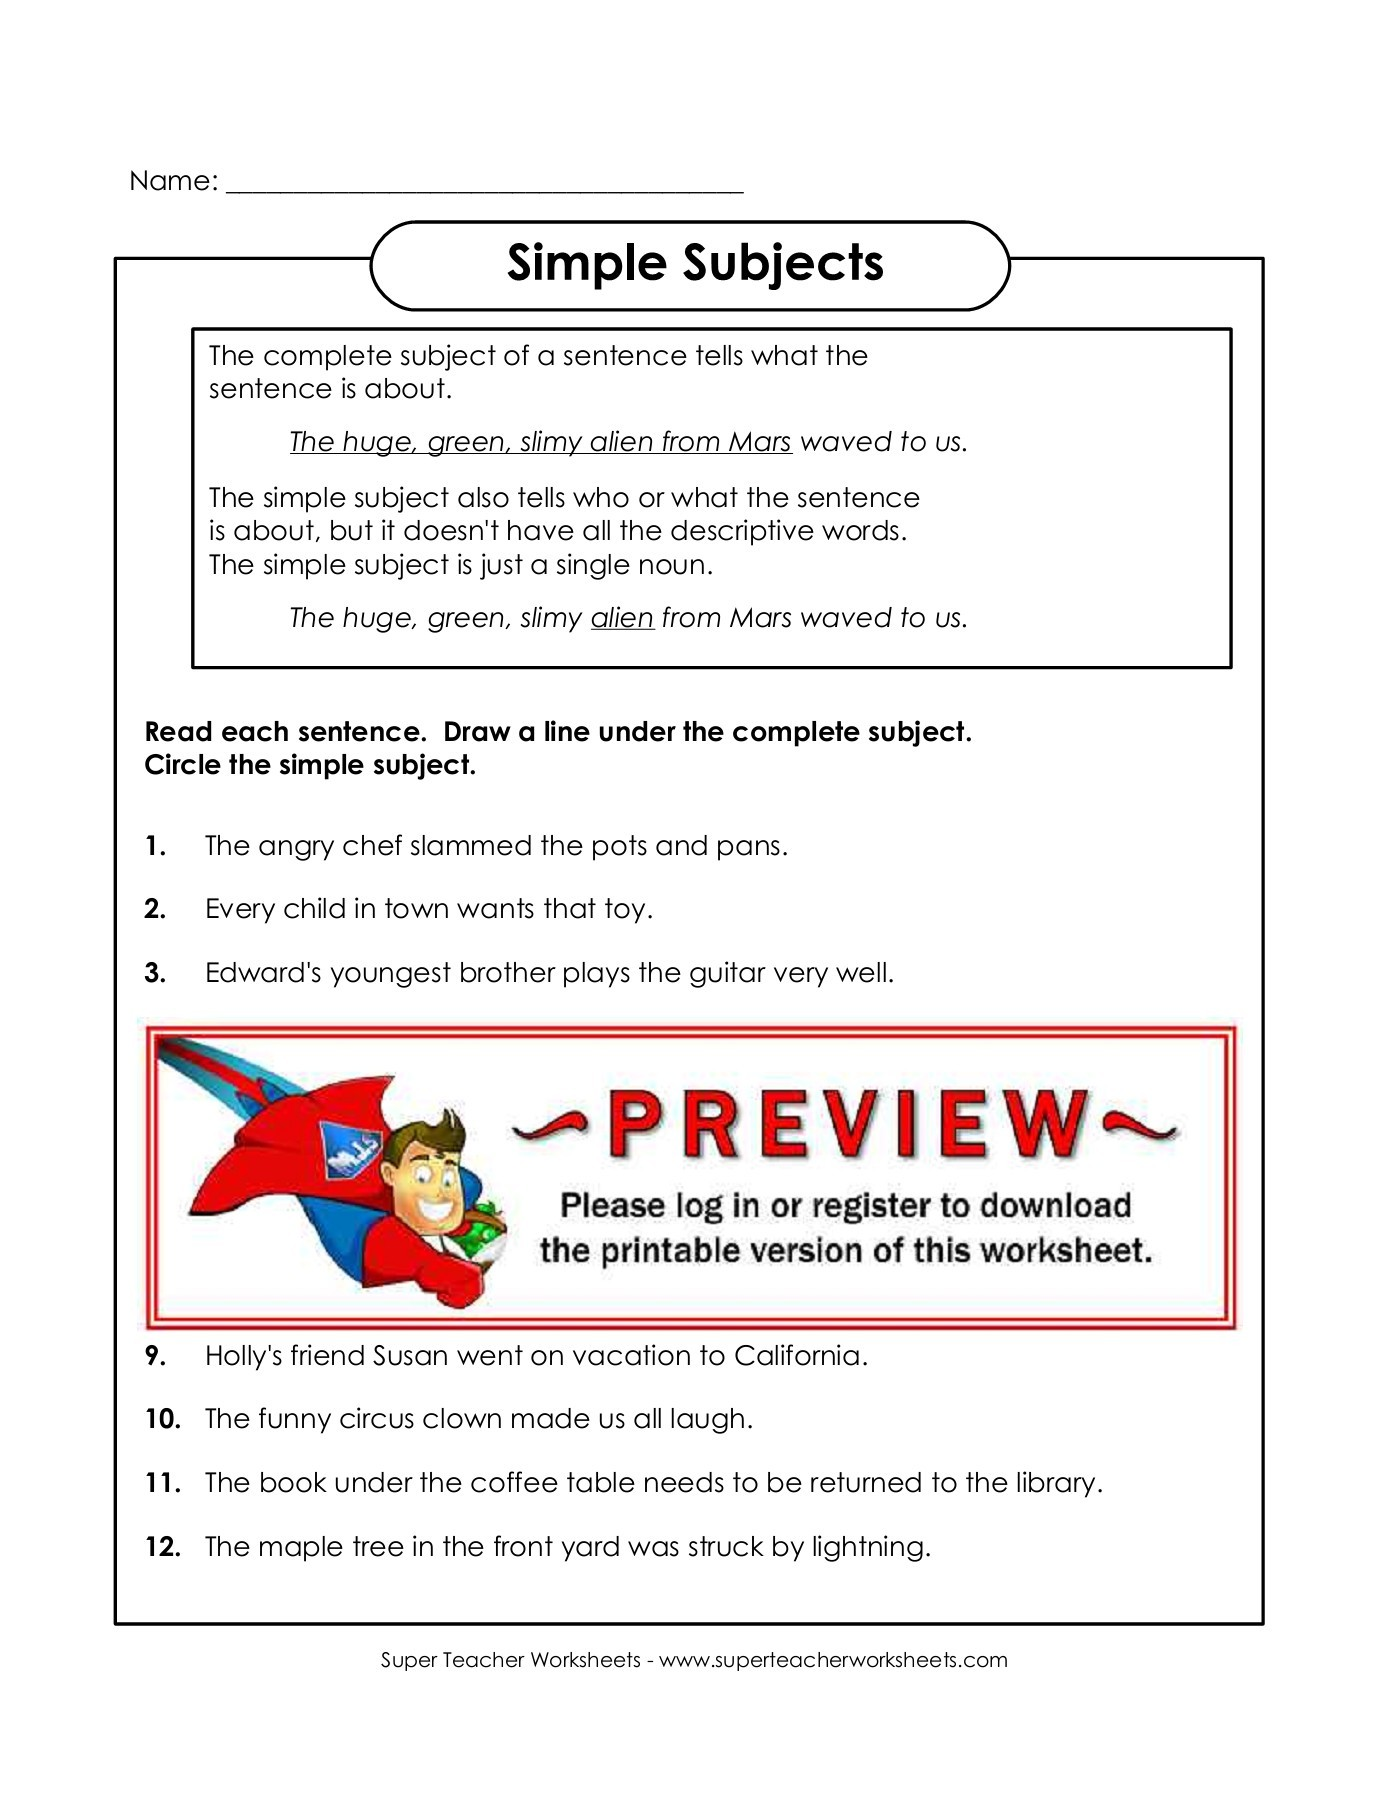 Simple Subject Worksheets With Answers